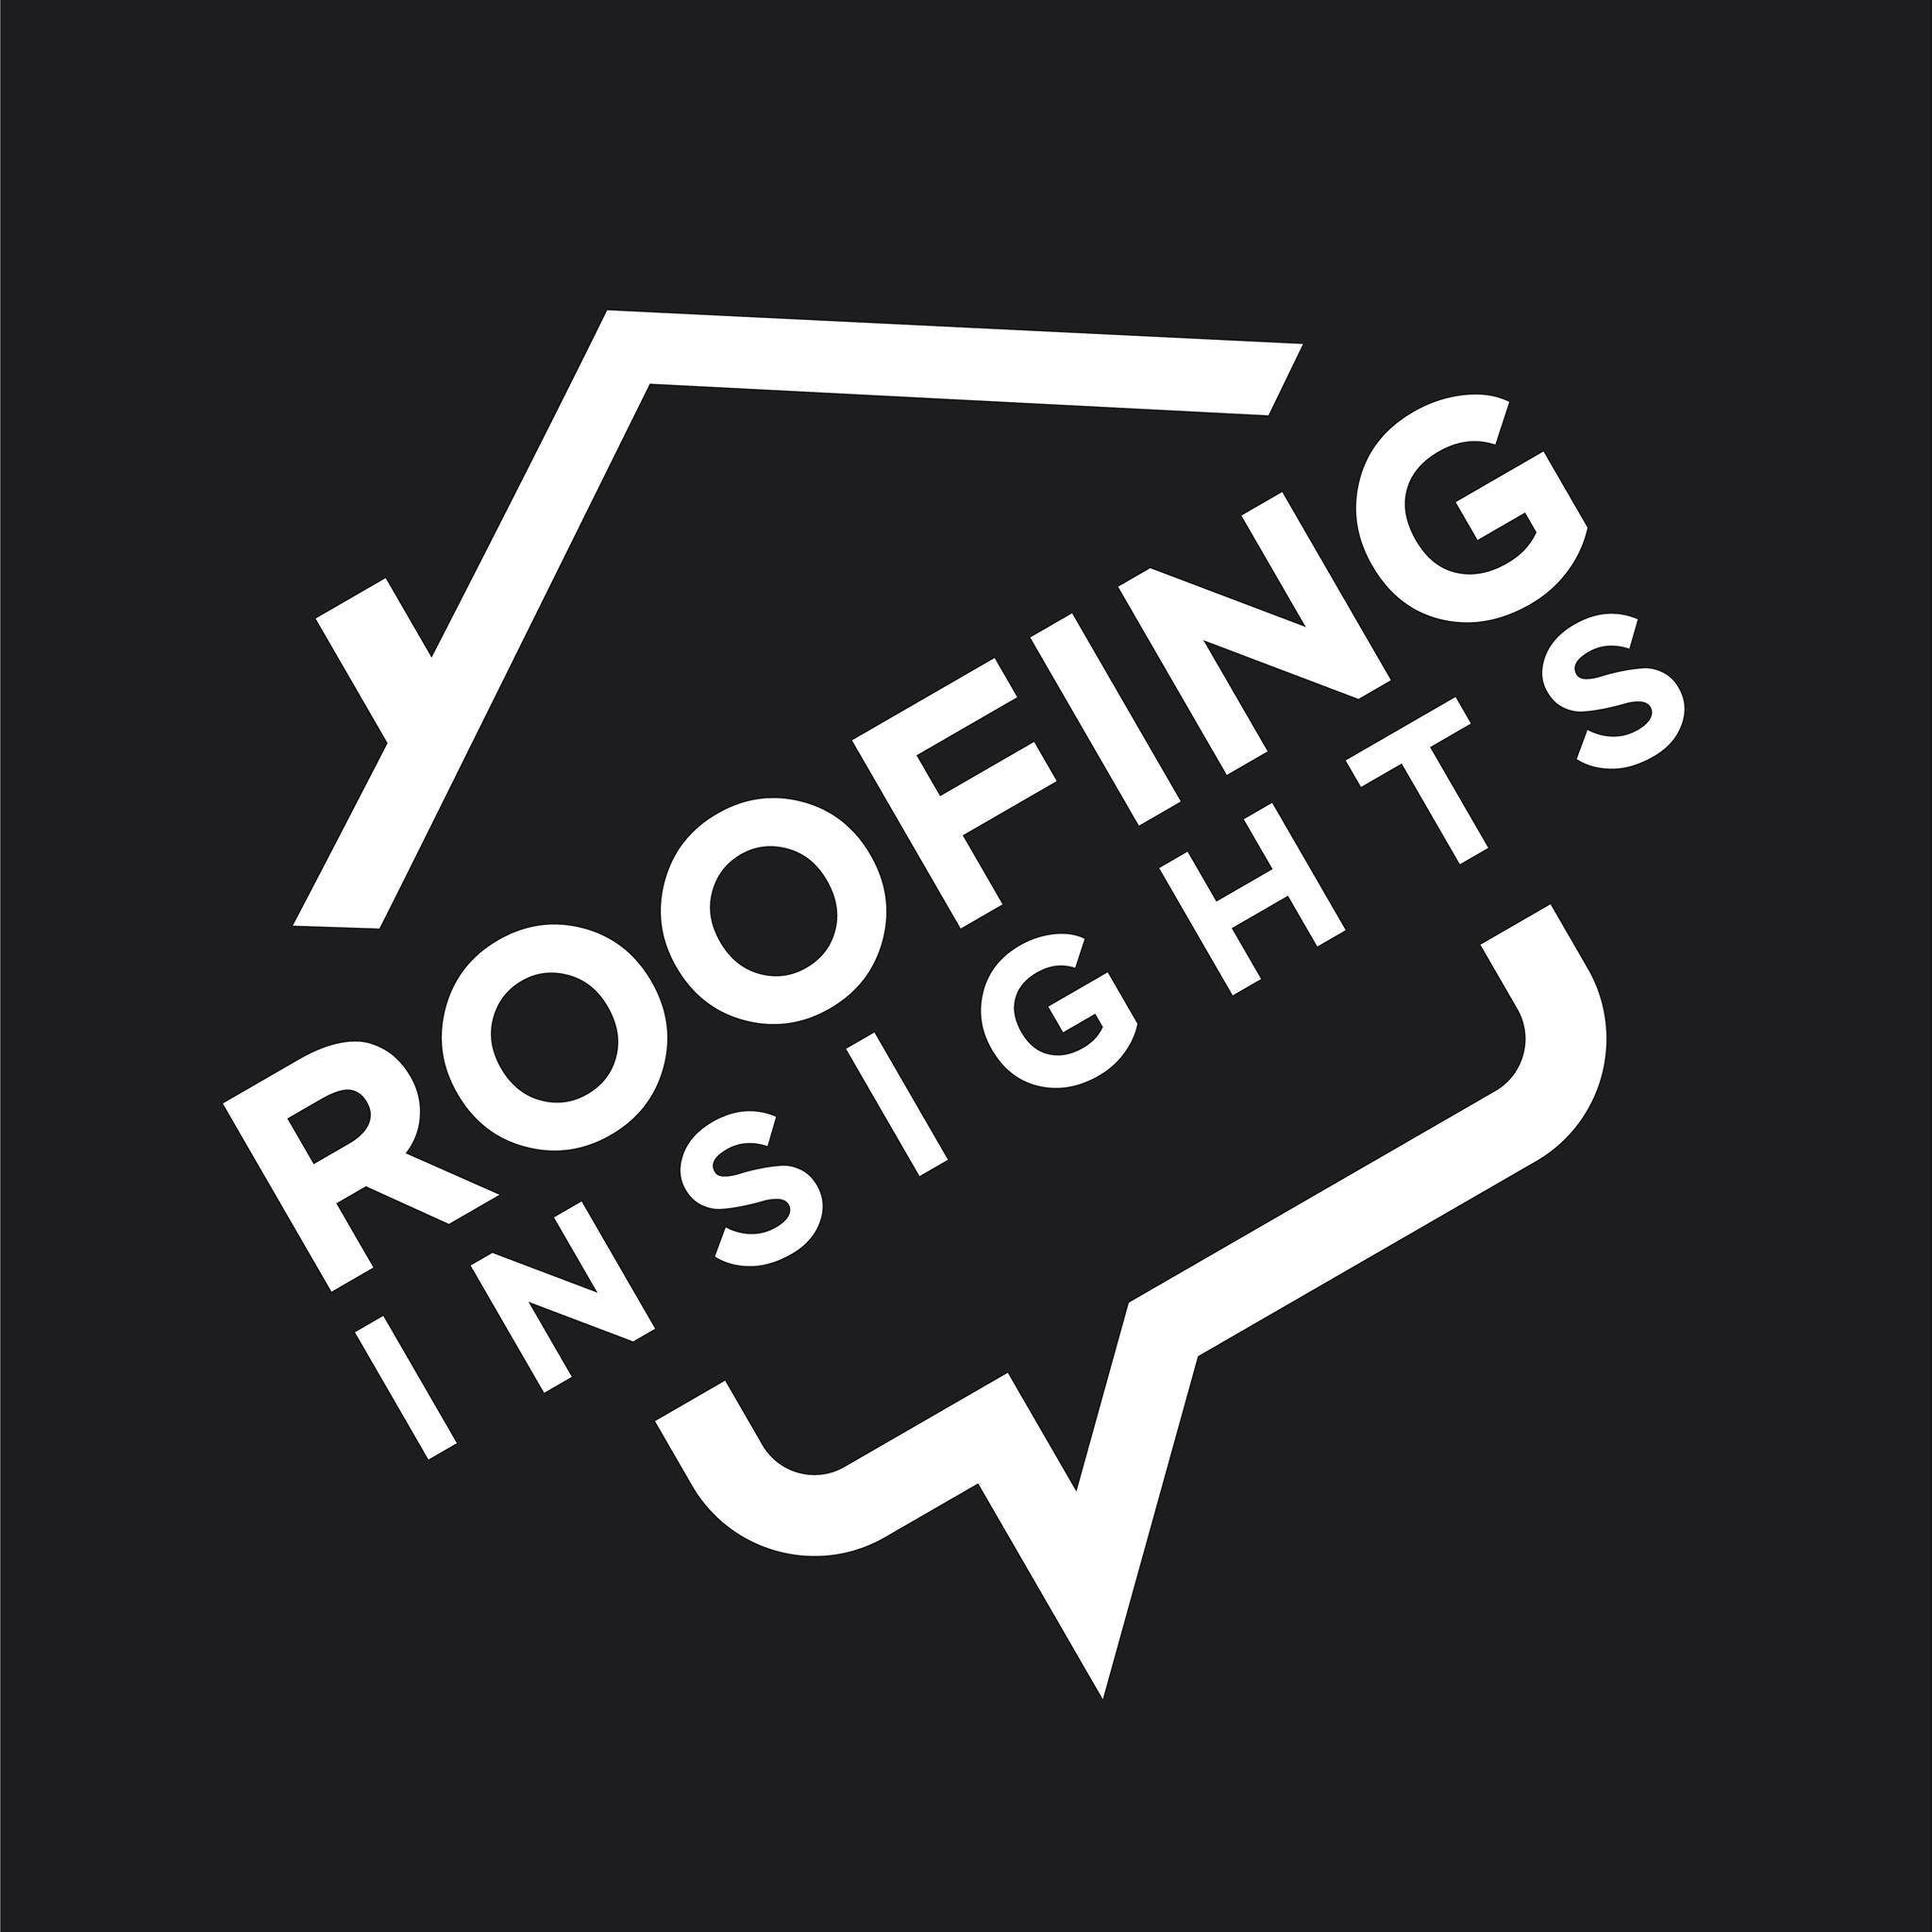 Roofing Directories: A Glimpse At The Future of The Roofing Industry